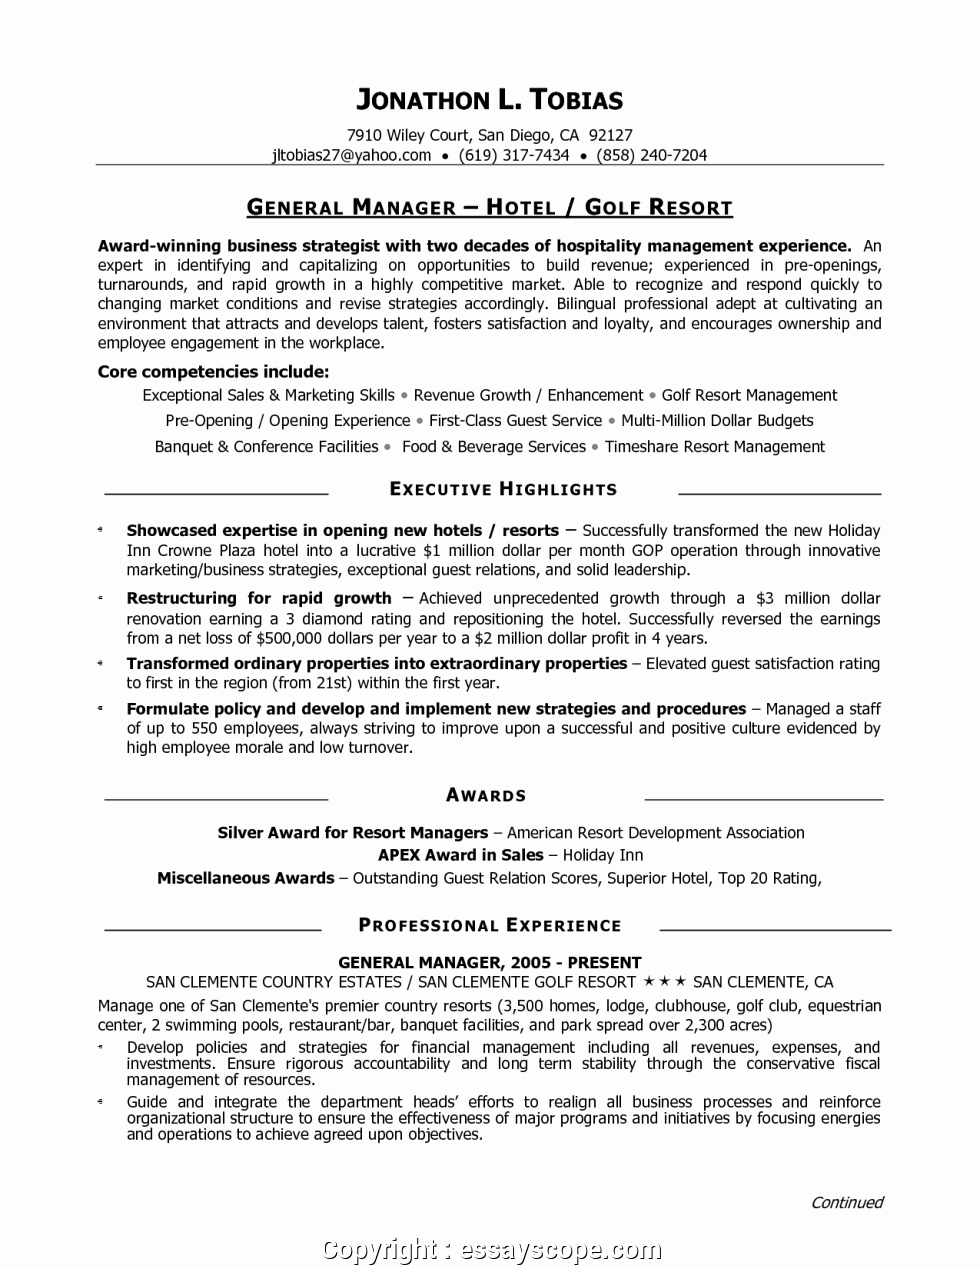 Restaurant General Manager Resume Example New Newest Best Restaurant General Manager Resume Restaurant